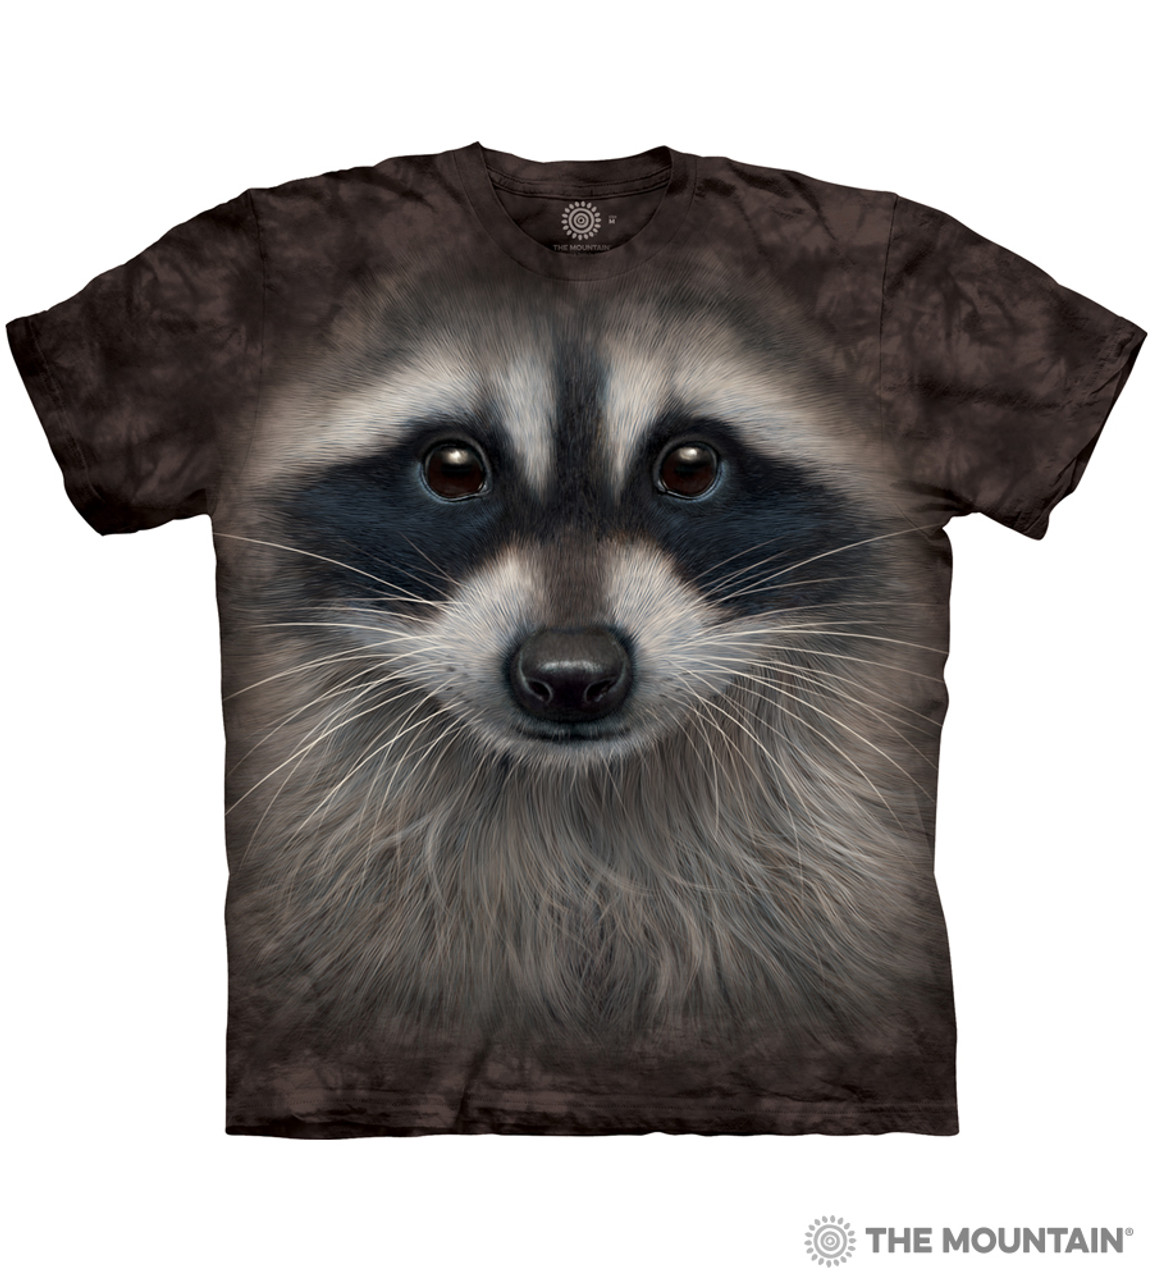 The Mountain Unisex Child Meerkat Portrait Animal T Shirt